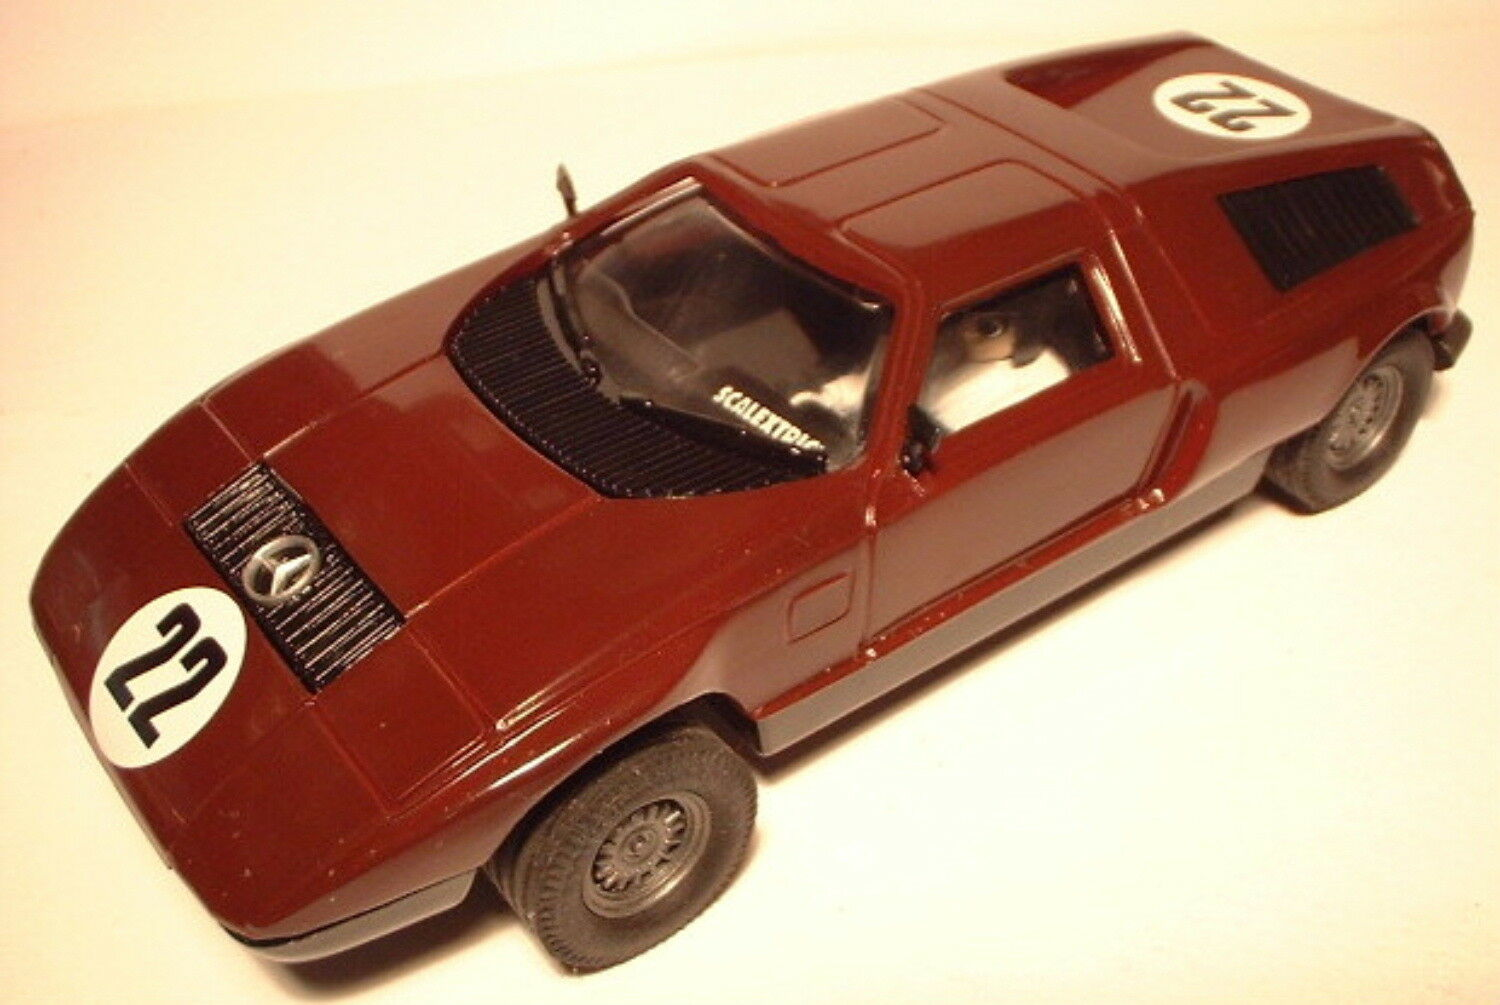 Qq SCX SPAIN PLANET CARS MYTHICAL MERCEDES WANKEL C 111 No 22 BURGUNDY L. E.